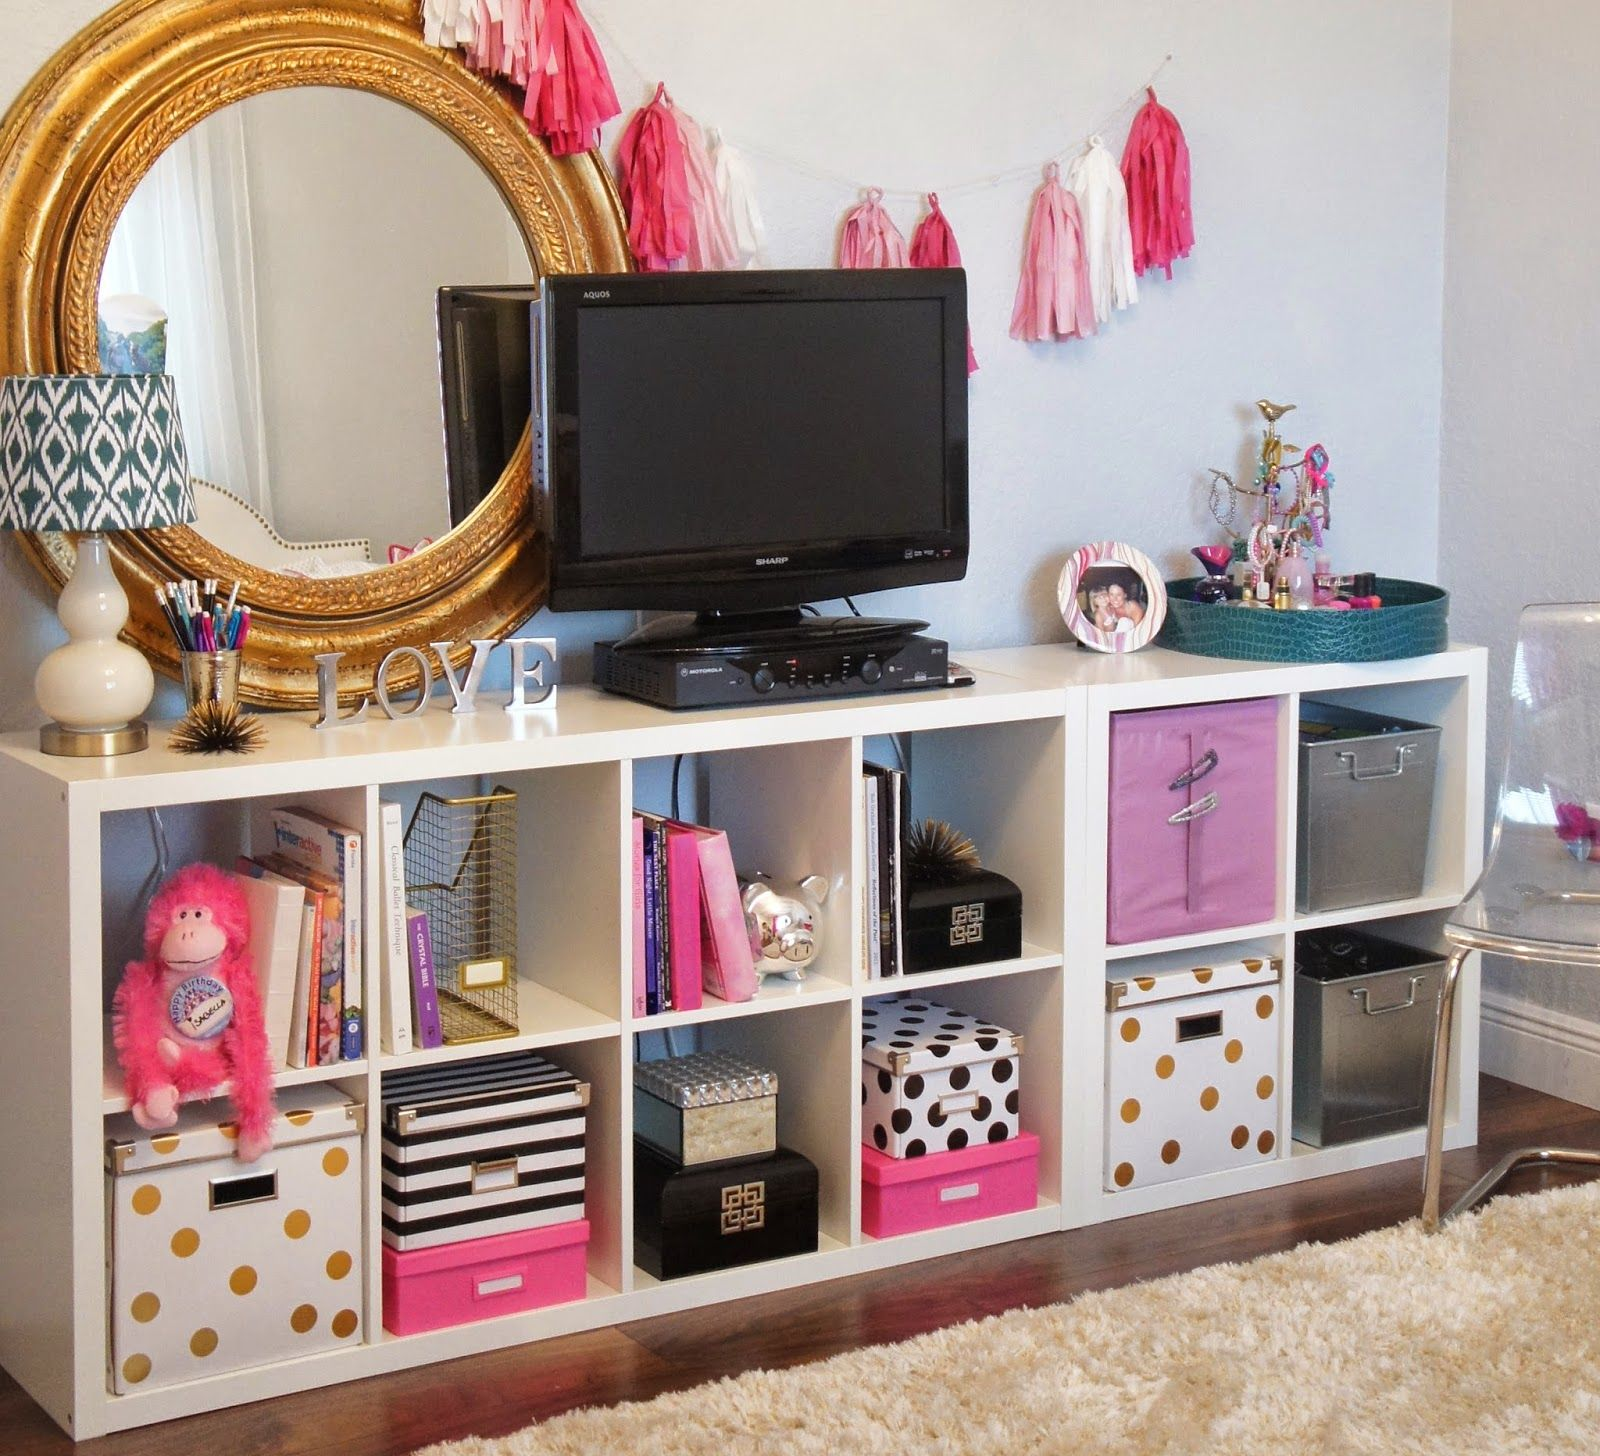 Ikea Expedit Decor Diy Kate Spade Inspired Ikea Storage Boxes Kids